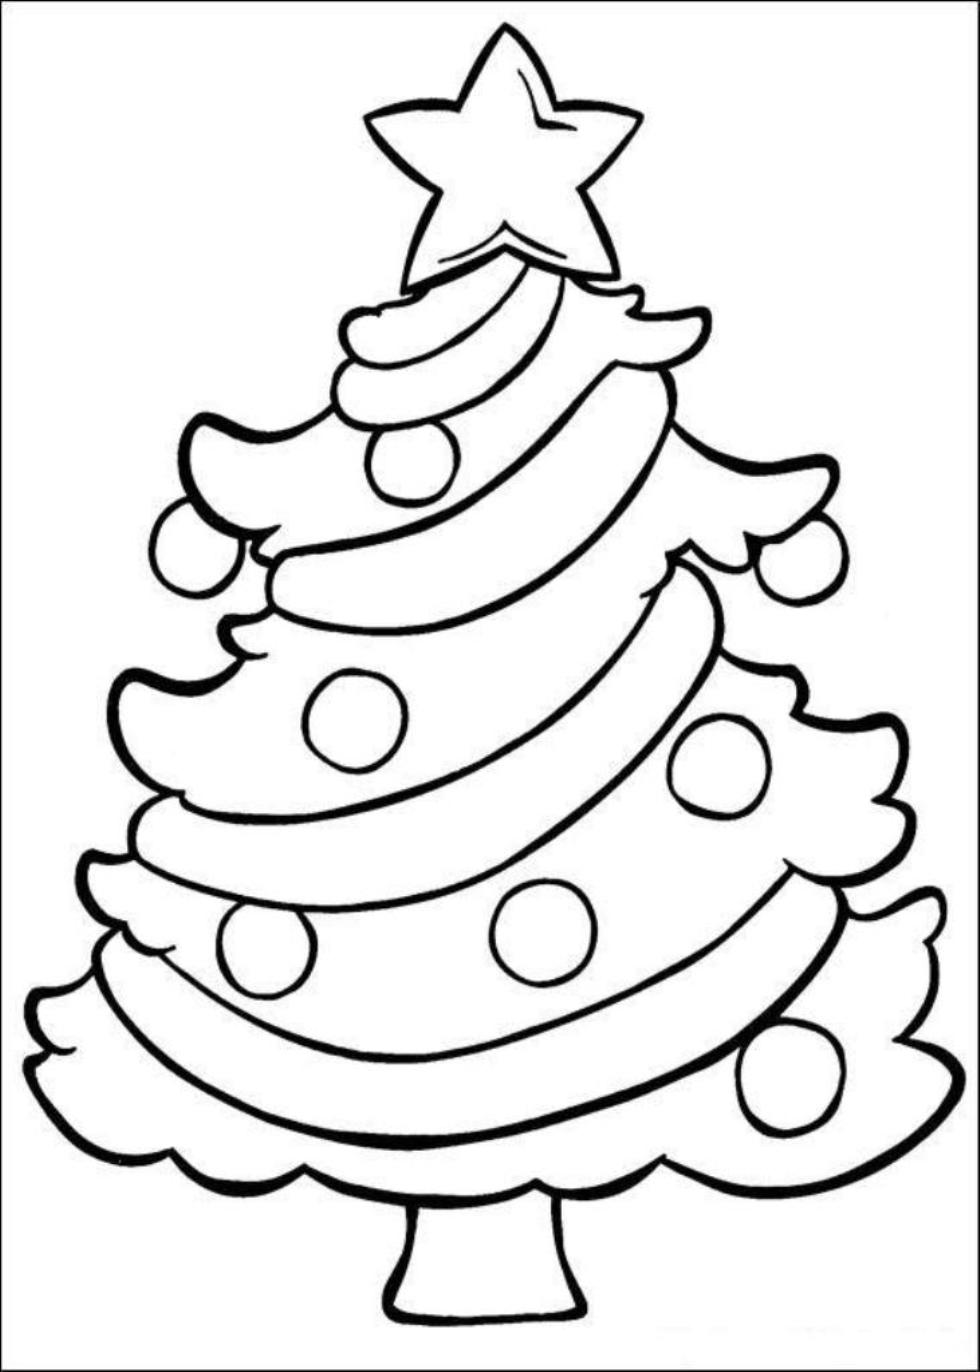 Cute Simple Mom Cute Christmas Coloring Pages Printable   Novocom.top